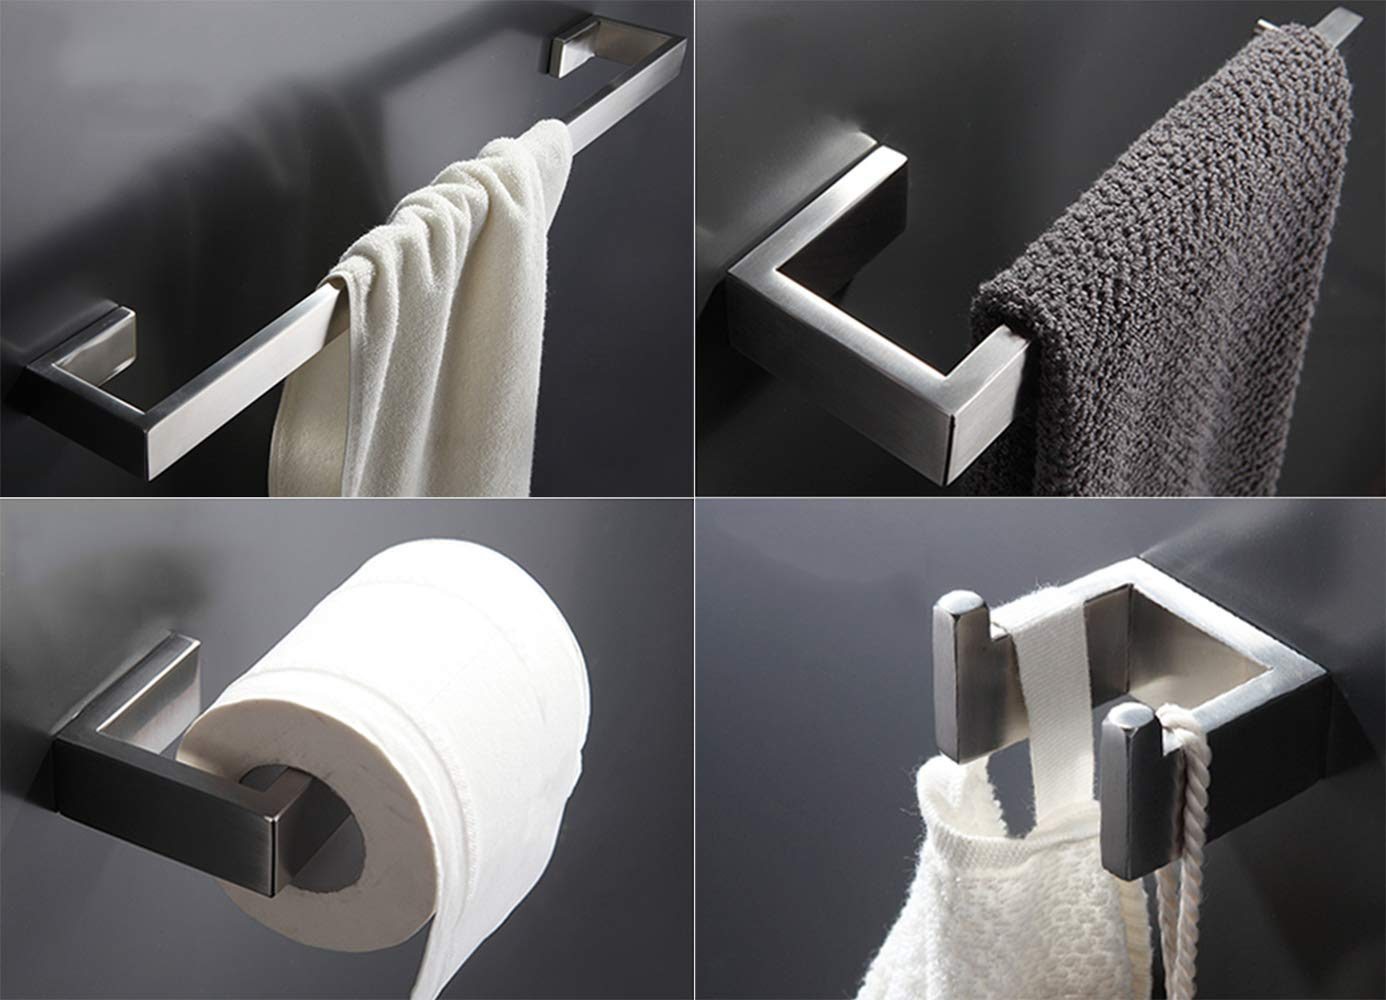 Towel Bar Set, 4Pcs Bathroom Hardware Accessory Set Brushed Nickel, Stainless Steel Bath Hardware Set, Towel Rod with Toilet Paper Holder, Towel Bar and Double Robe Hook. by May & Z